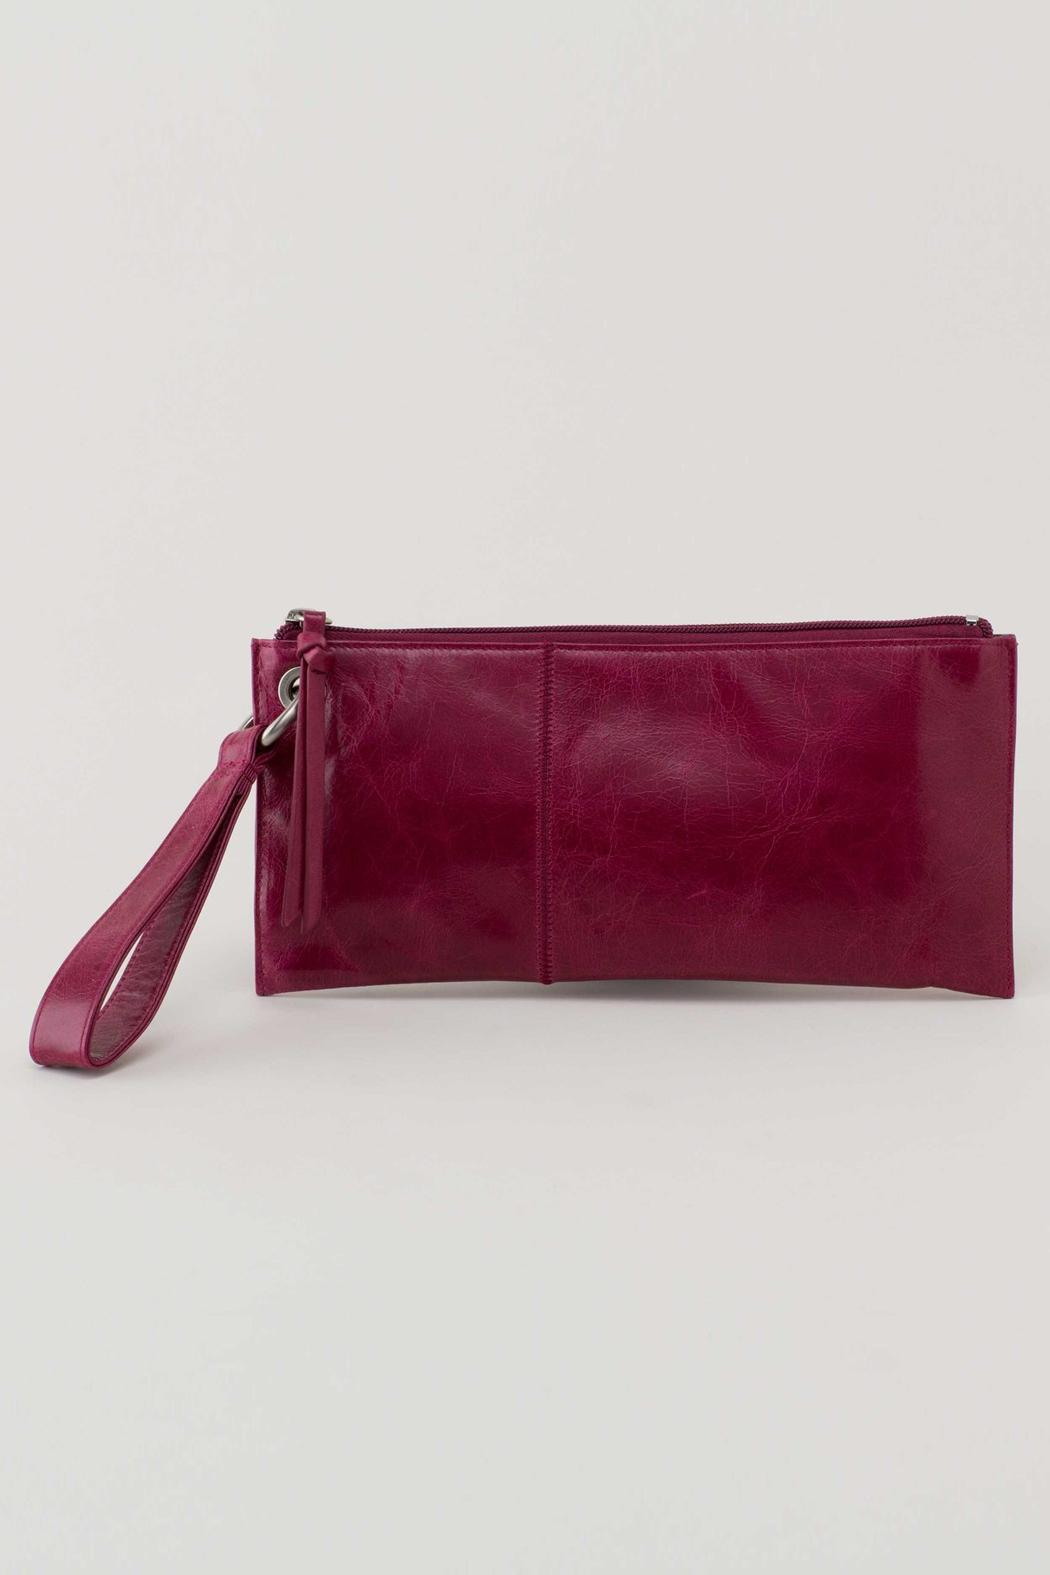 VIDA Statement Clutch - Unique 18 by VIDA